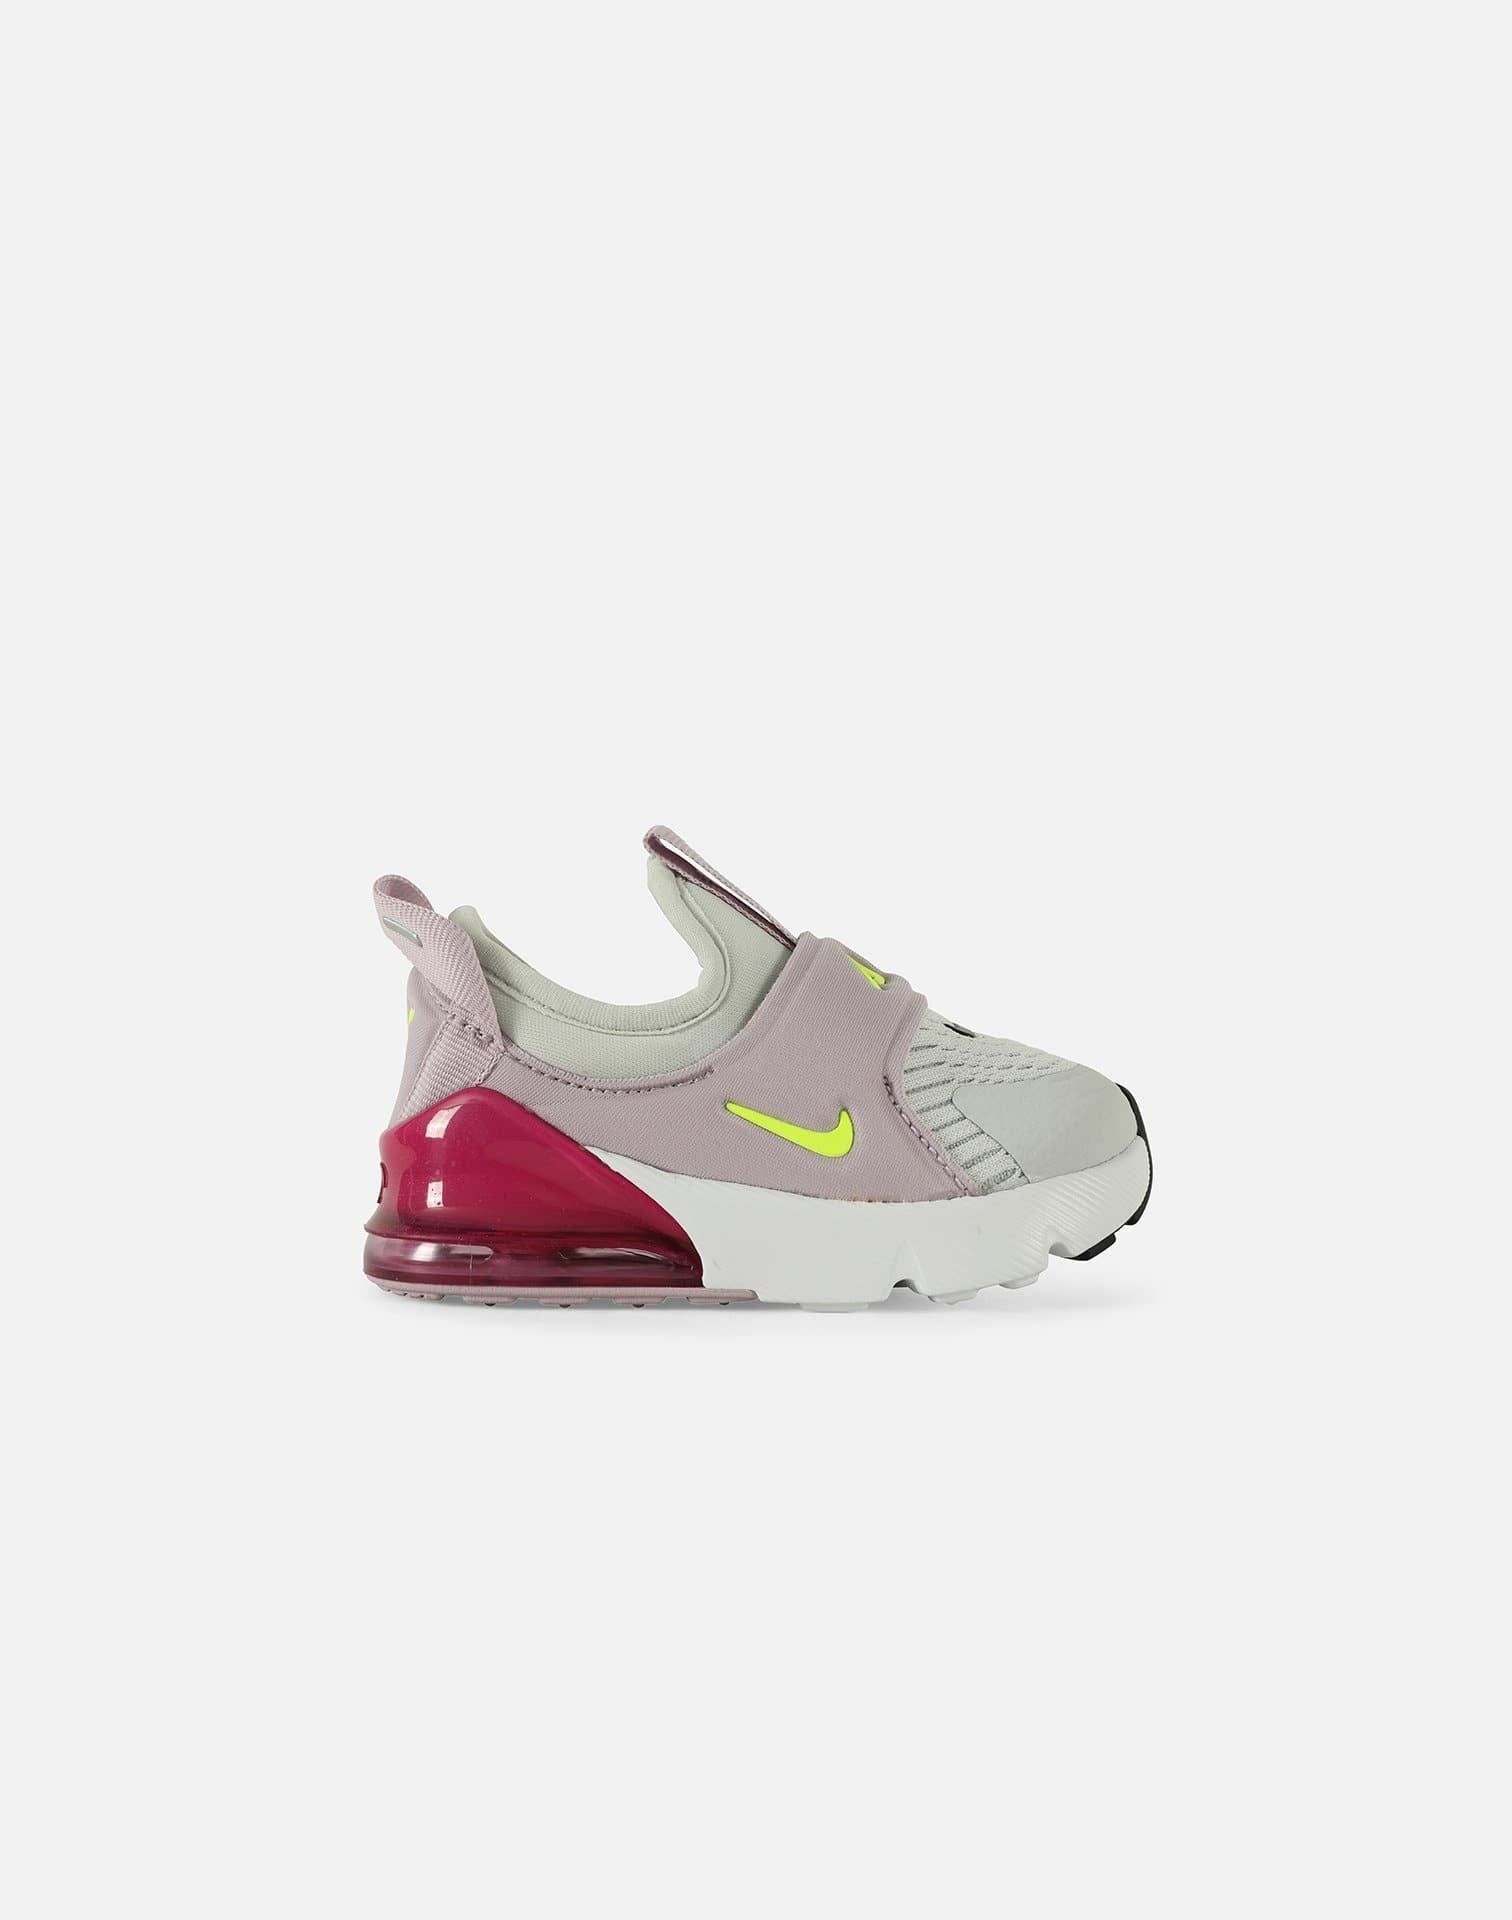 AIR MAX 270 EXTREME INFANT – DTLR